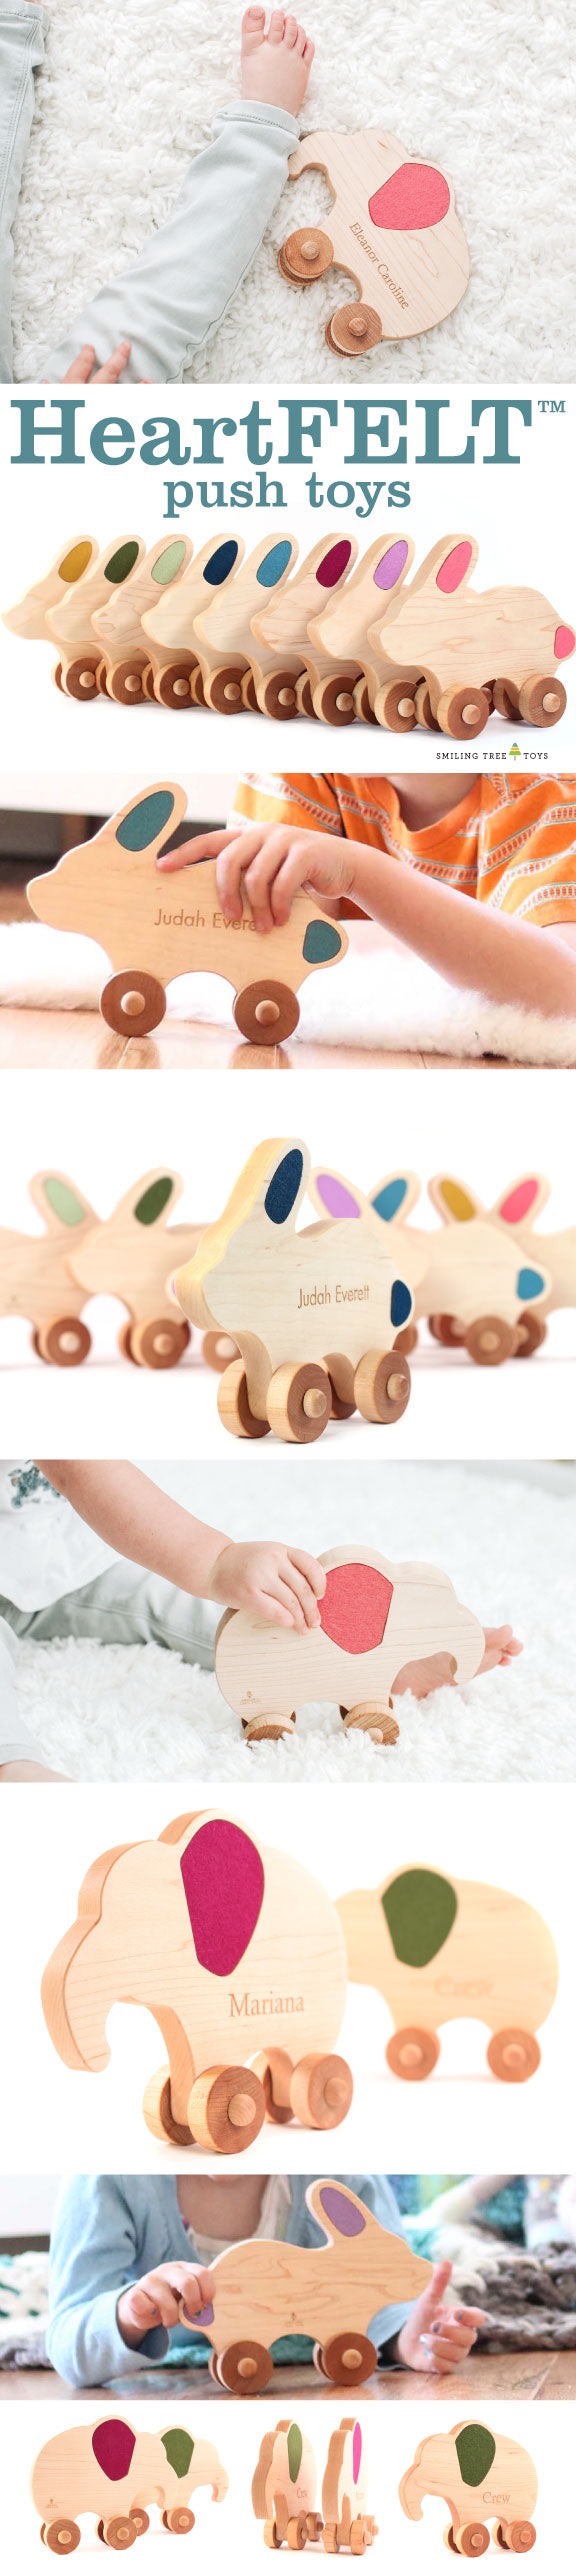 HeartFELT Push Toys handmade wooden toys for babies and toddlers